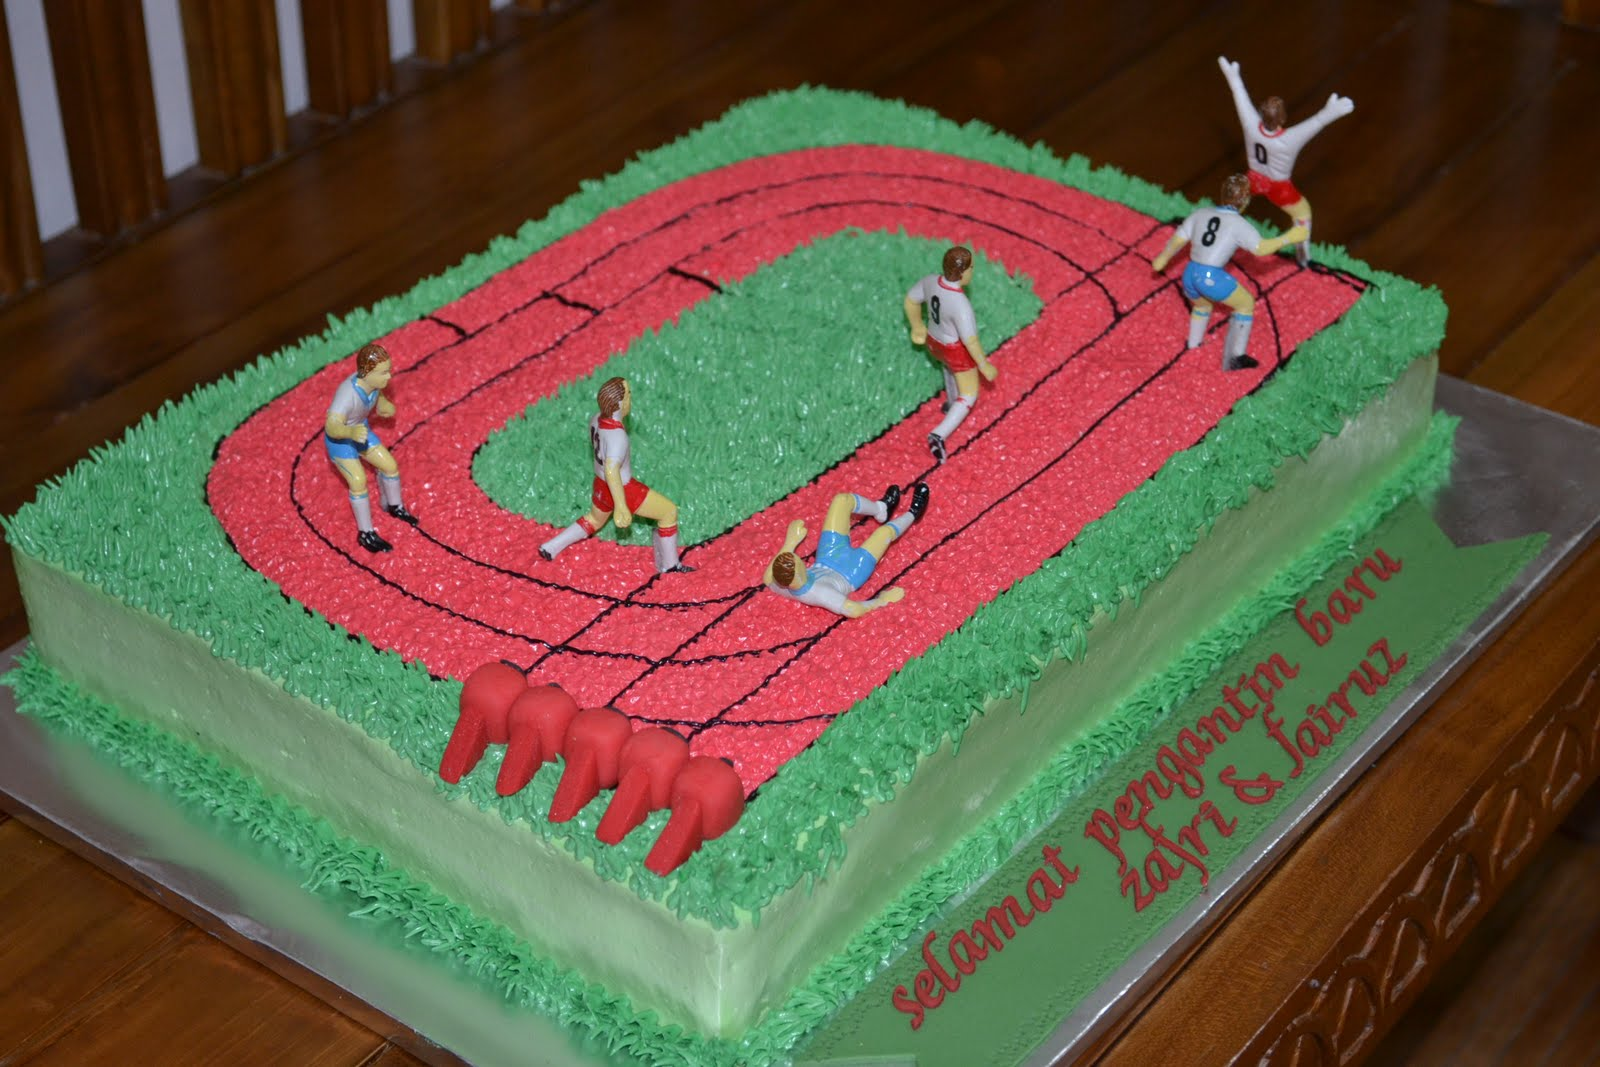 Cake Decorating Ideas Runners : Track And Field Cake Cake Ideas and Designs